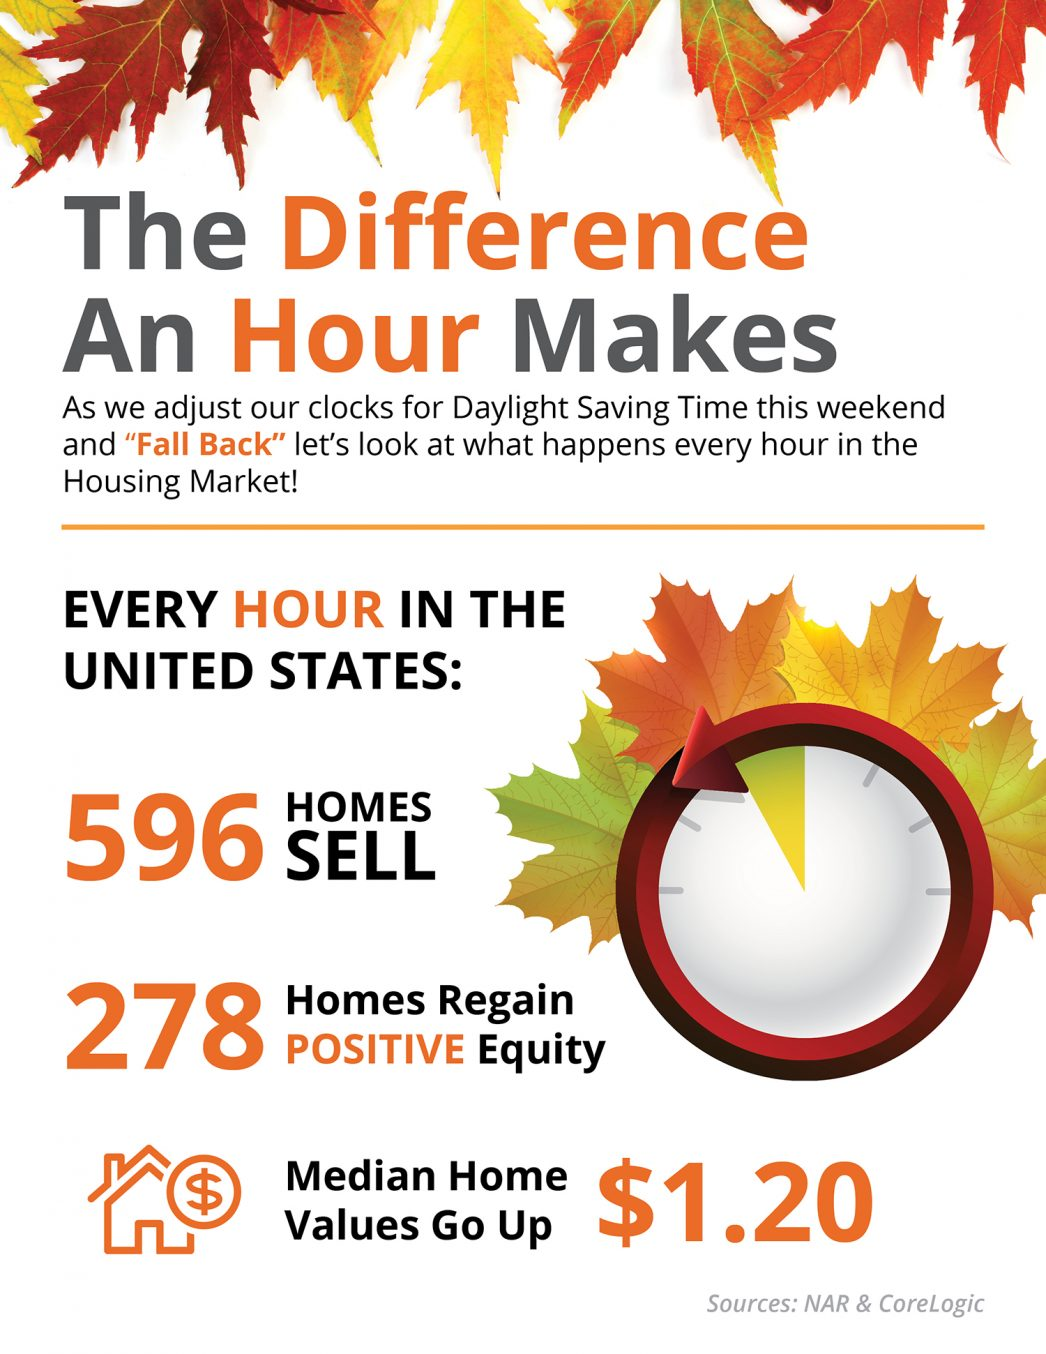 the difference an hour makes infographic